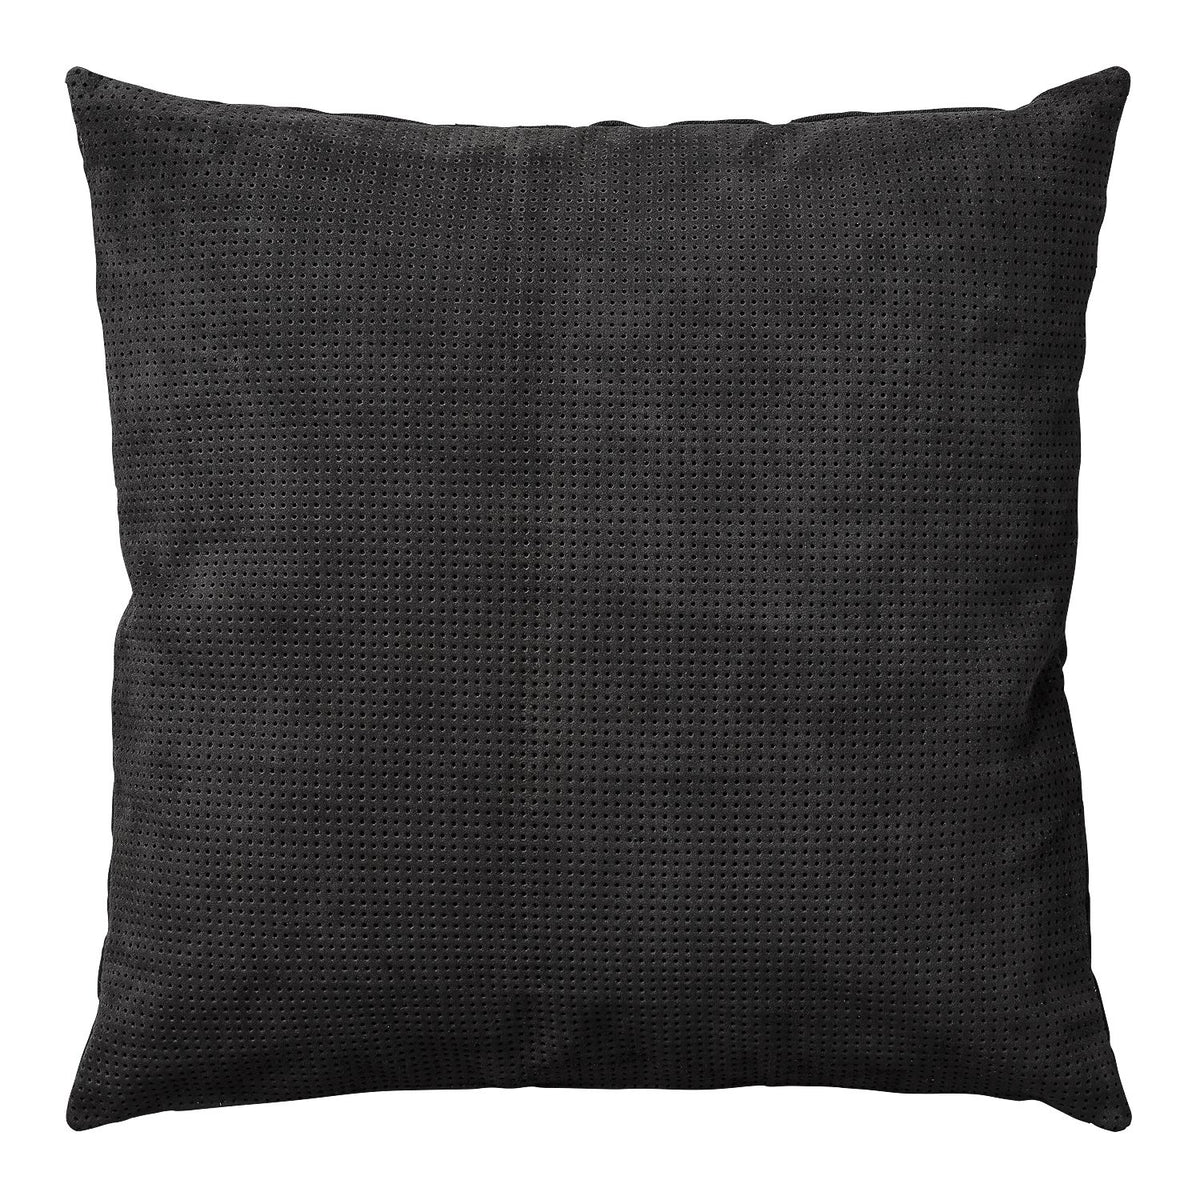 PUNCTA cushion